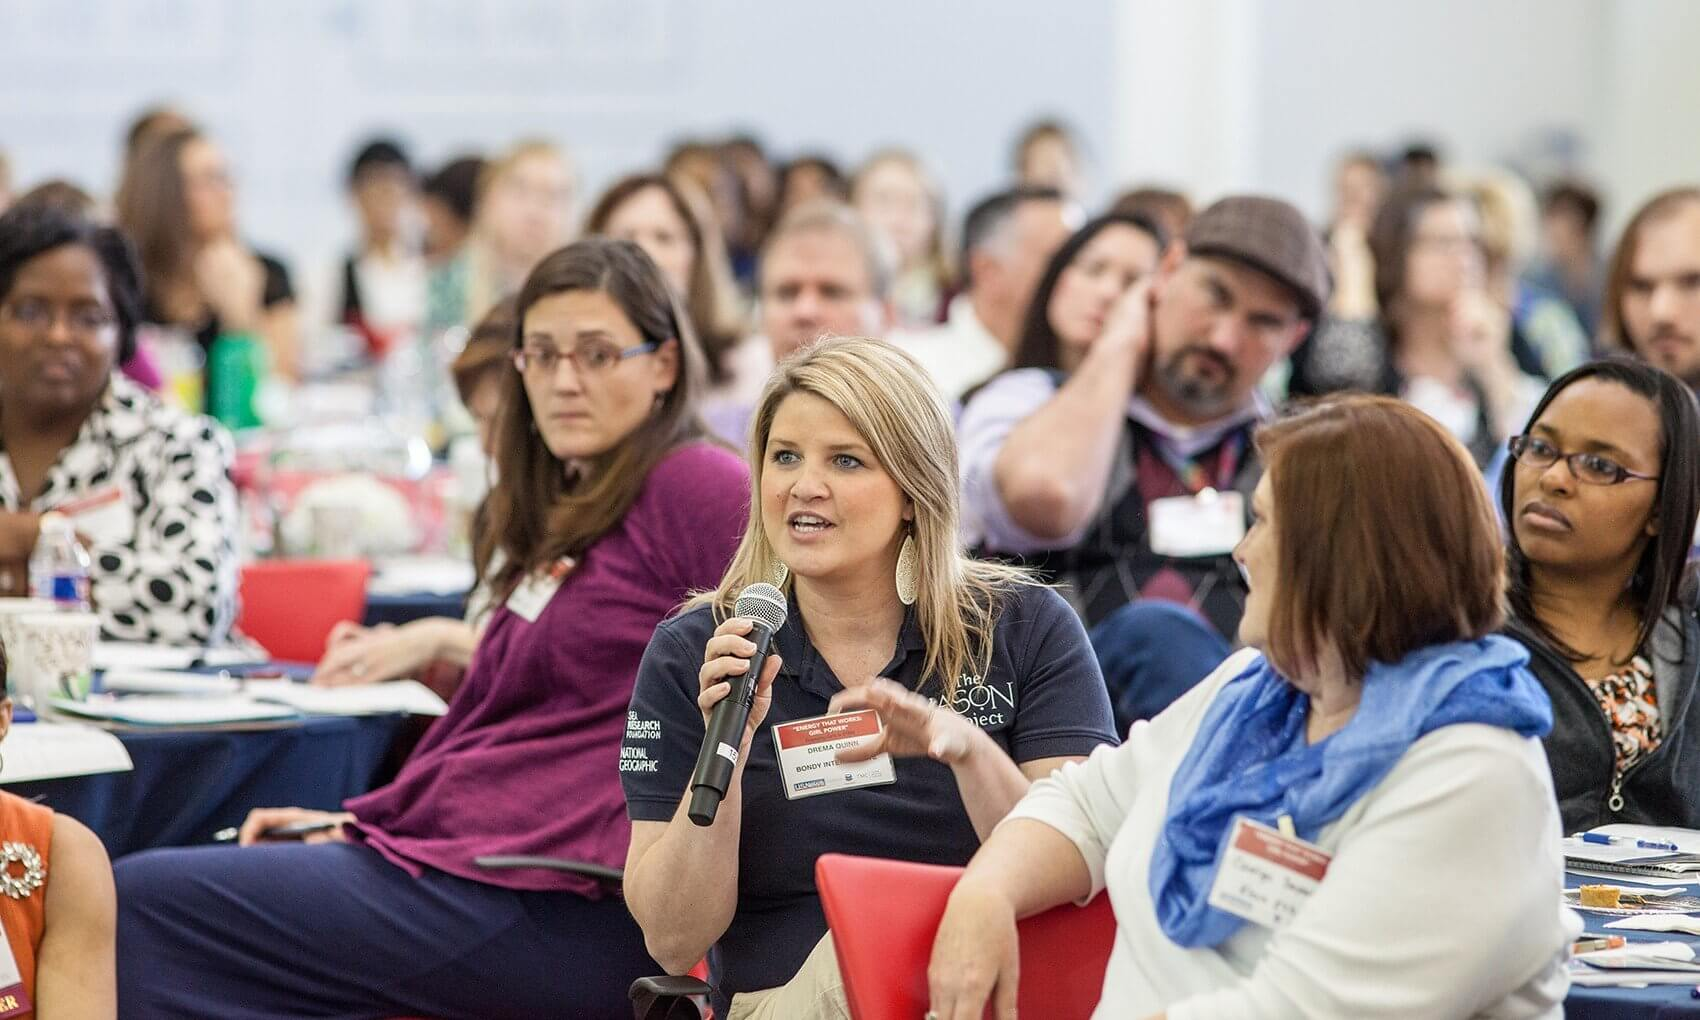 """Entitled, """"Energy That Works: Girl Power,"""" the event brought together community members across a broad range of disciplines to discuss ways to engage girls in science, technology, education and math."""